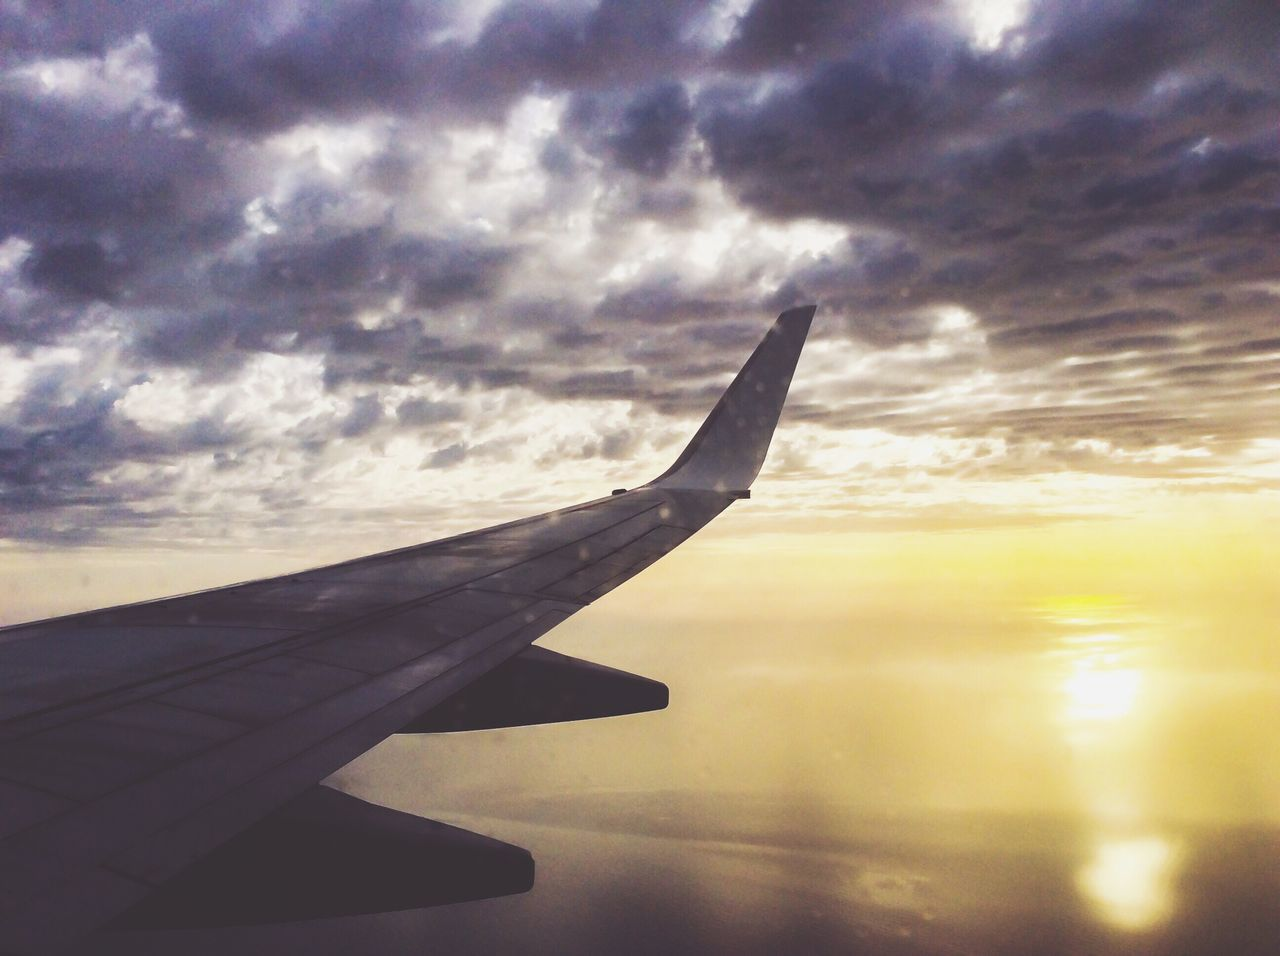 airplane, journey, sky, cloud - sky, travel, transportation, sunset, cloudscape, airplane wing, nature, flying, aircraft wing, beauty in nature, no people, mode of transport, scenics, aerial view, outdoors, air vehicle, mid-air, tranquility, close-up, day